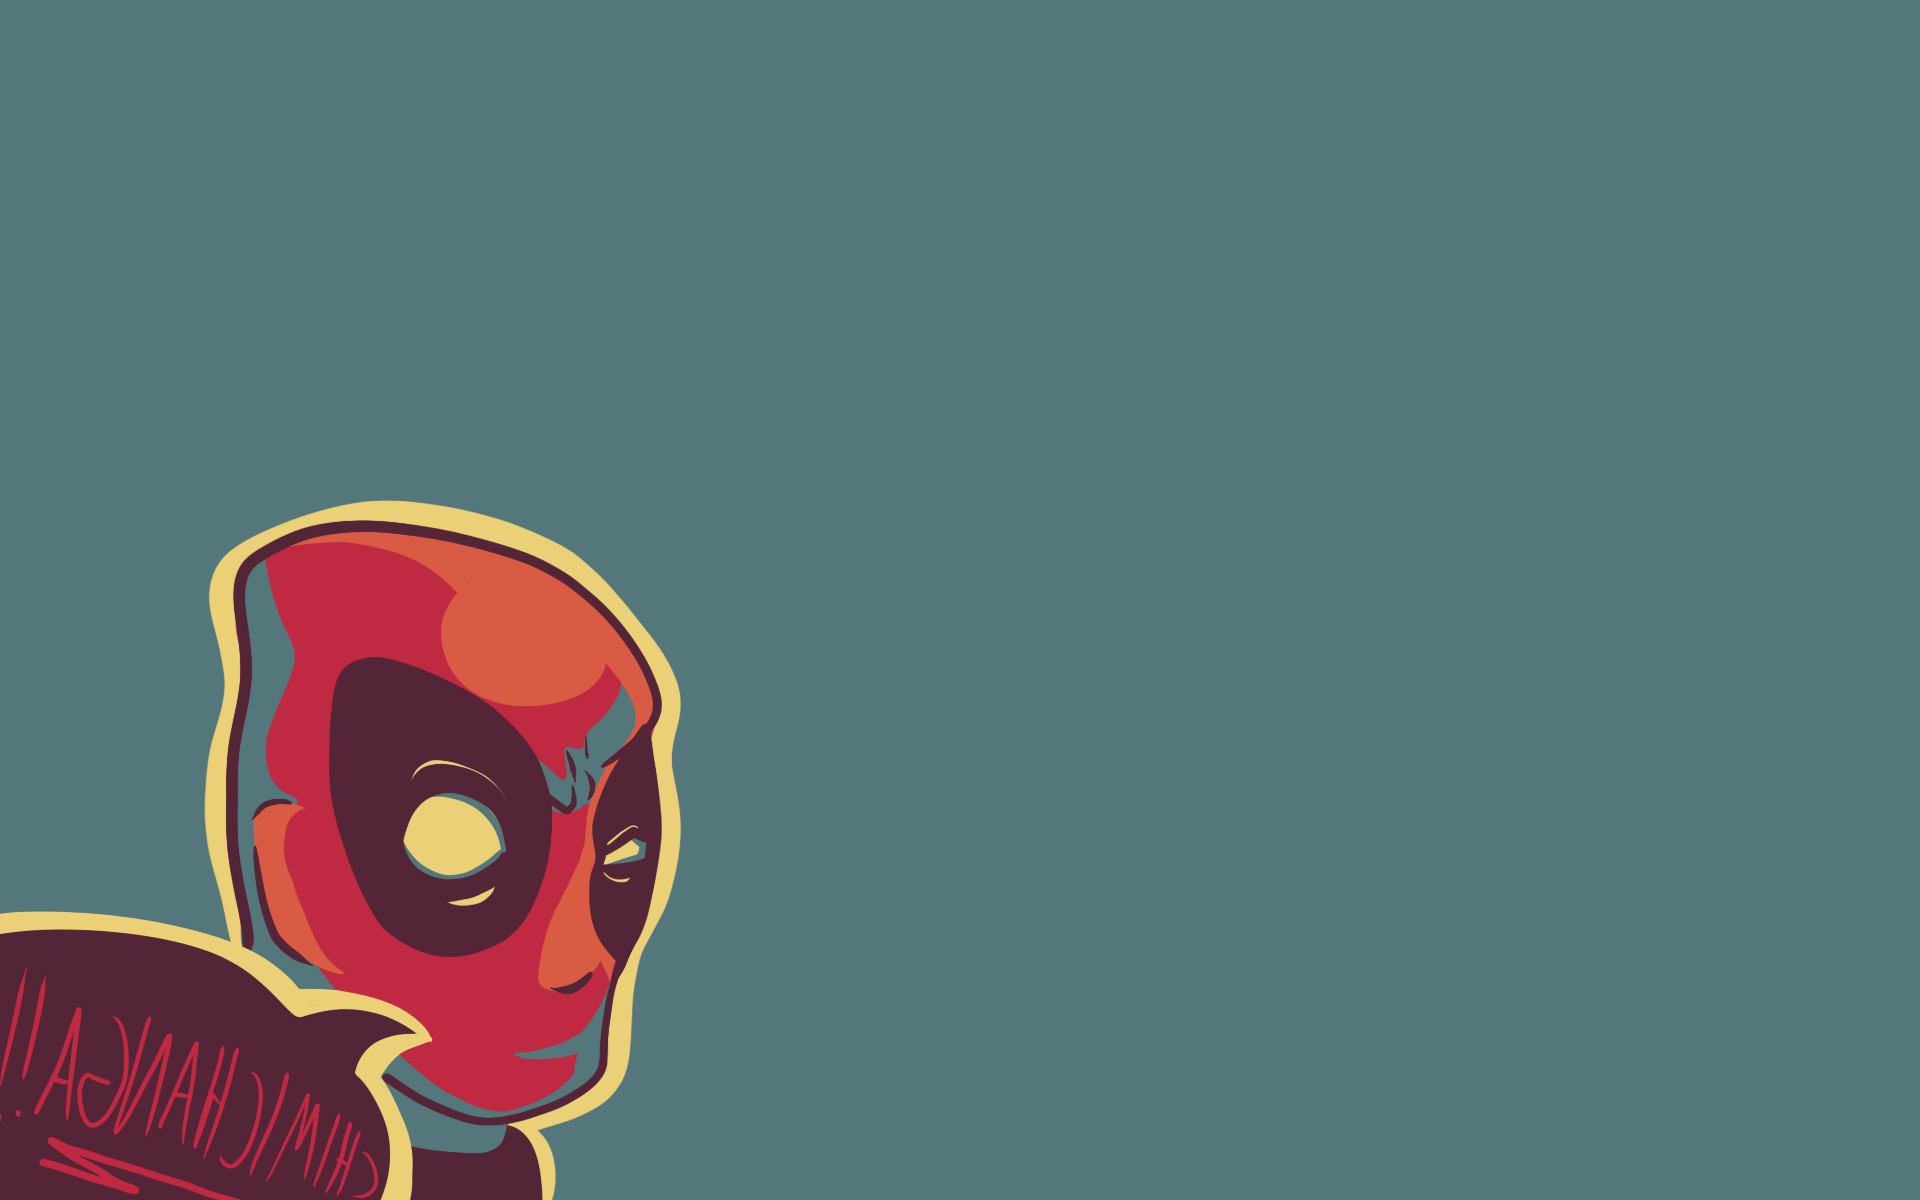 … deadpool wallpapers hd desktop and mobile backgrounds …